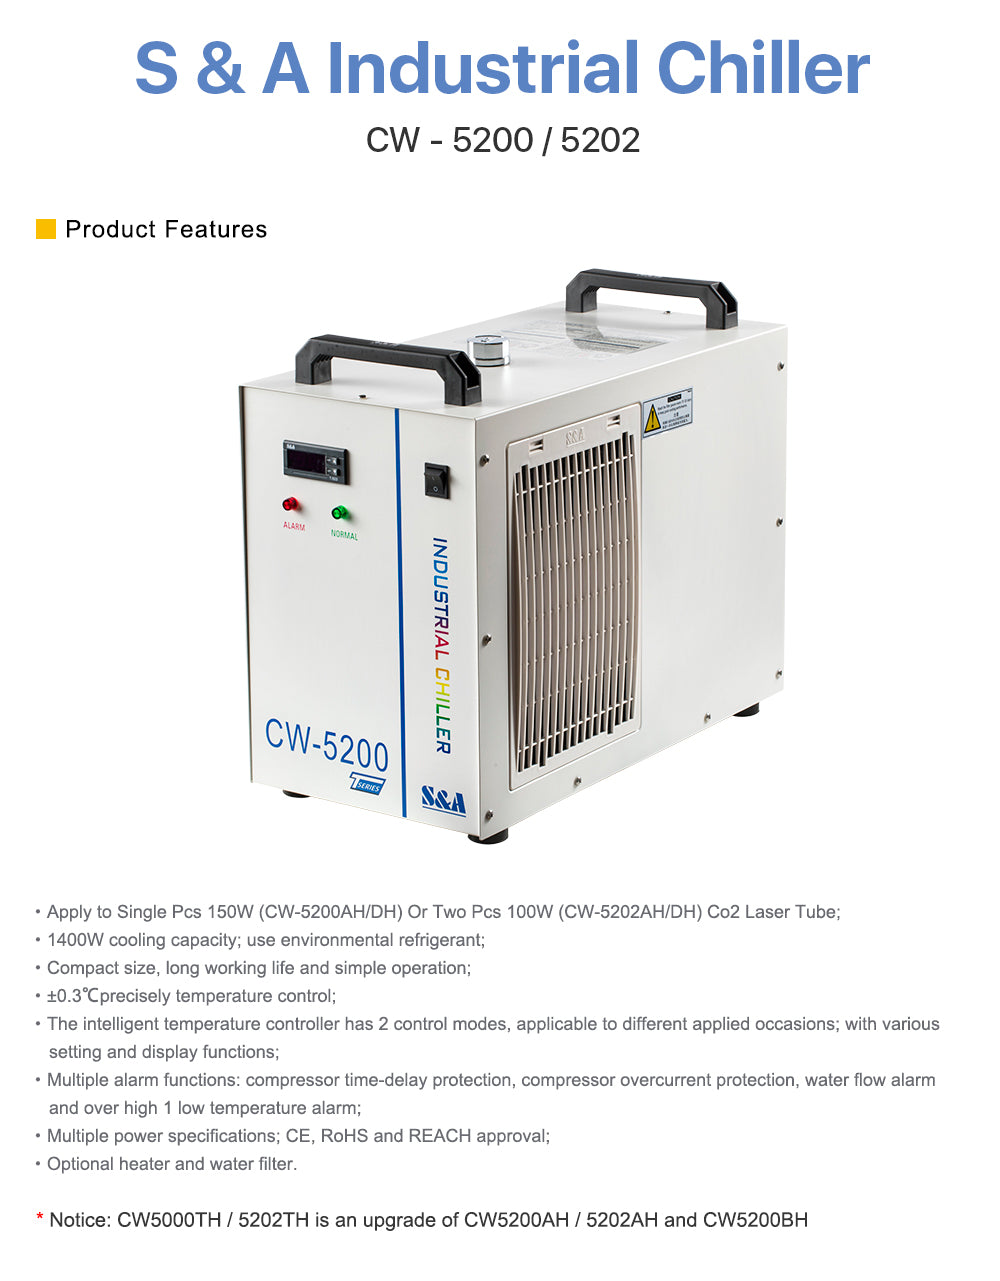 Cloudray S&A Industrial Chiller